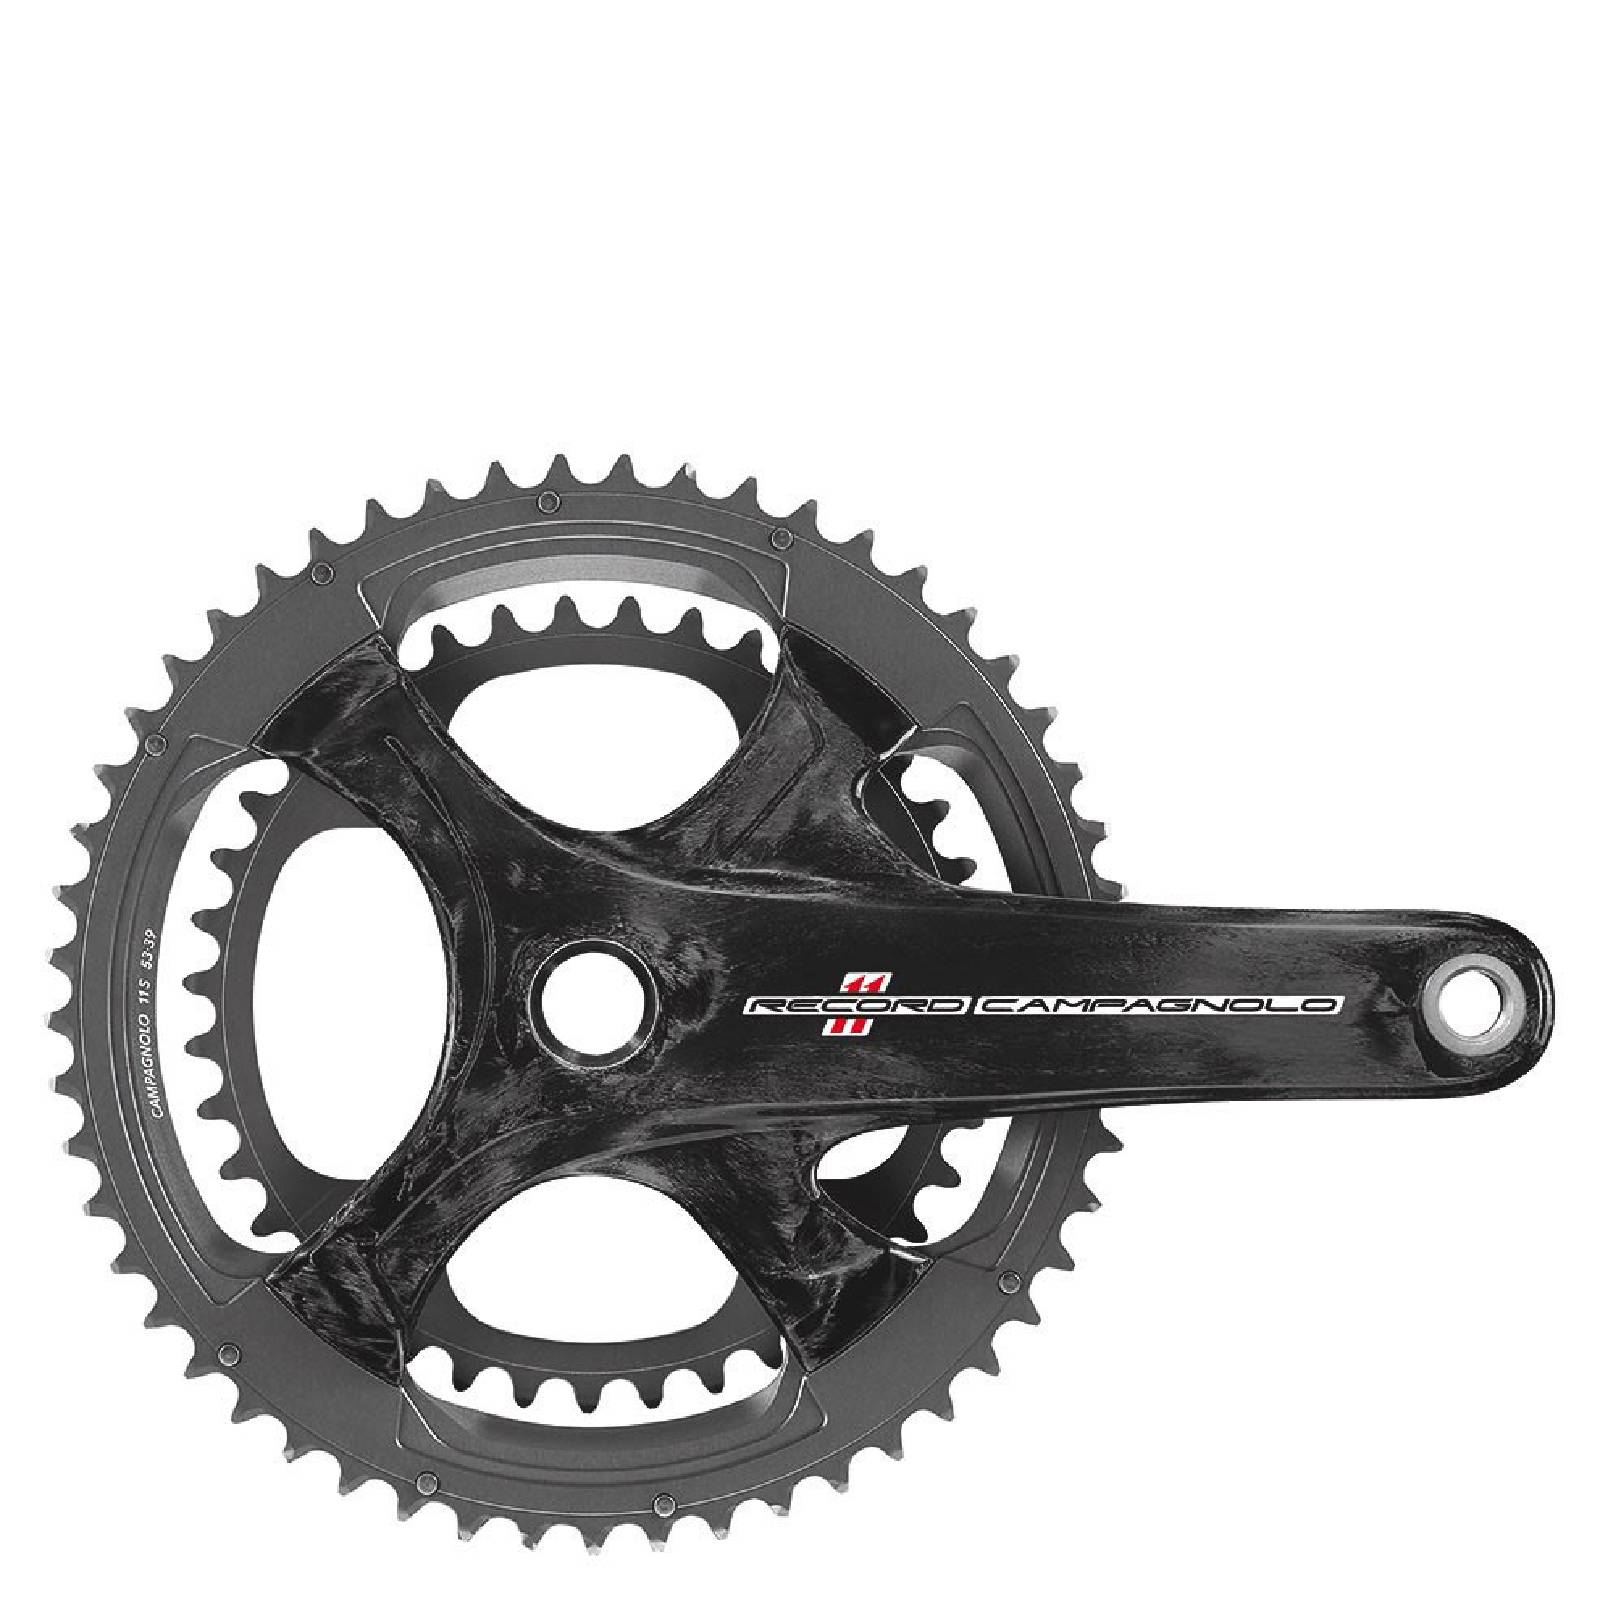 Campagnolo Record 11 Speed Ultra Torque Carbon Compact Chainset - Black - 52-36T 172.5mm